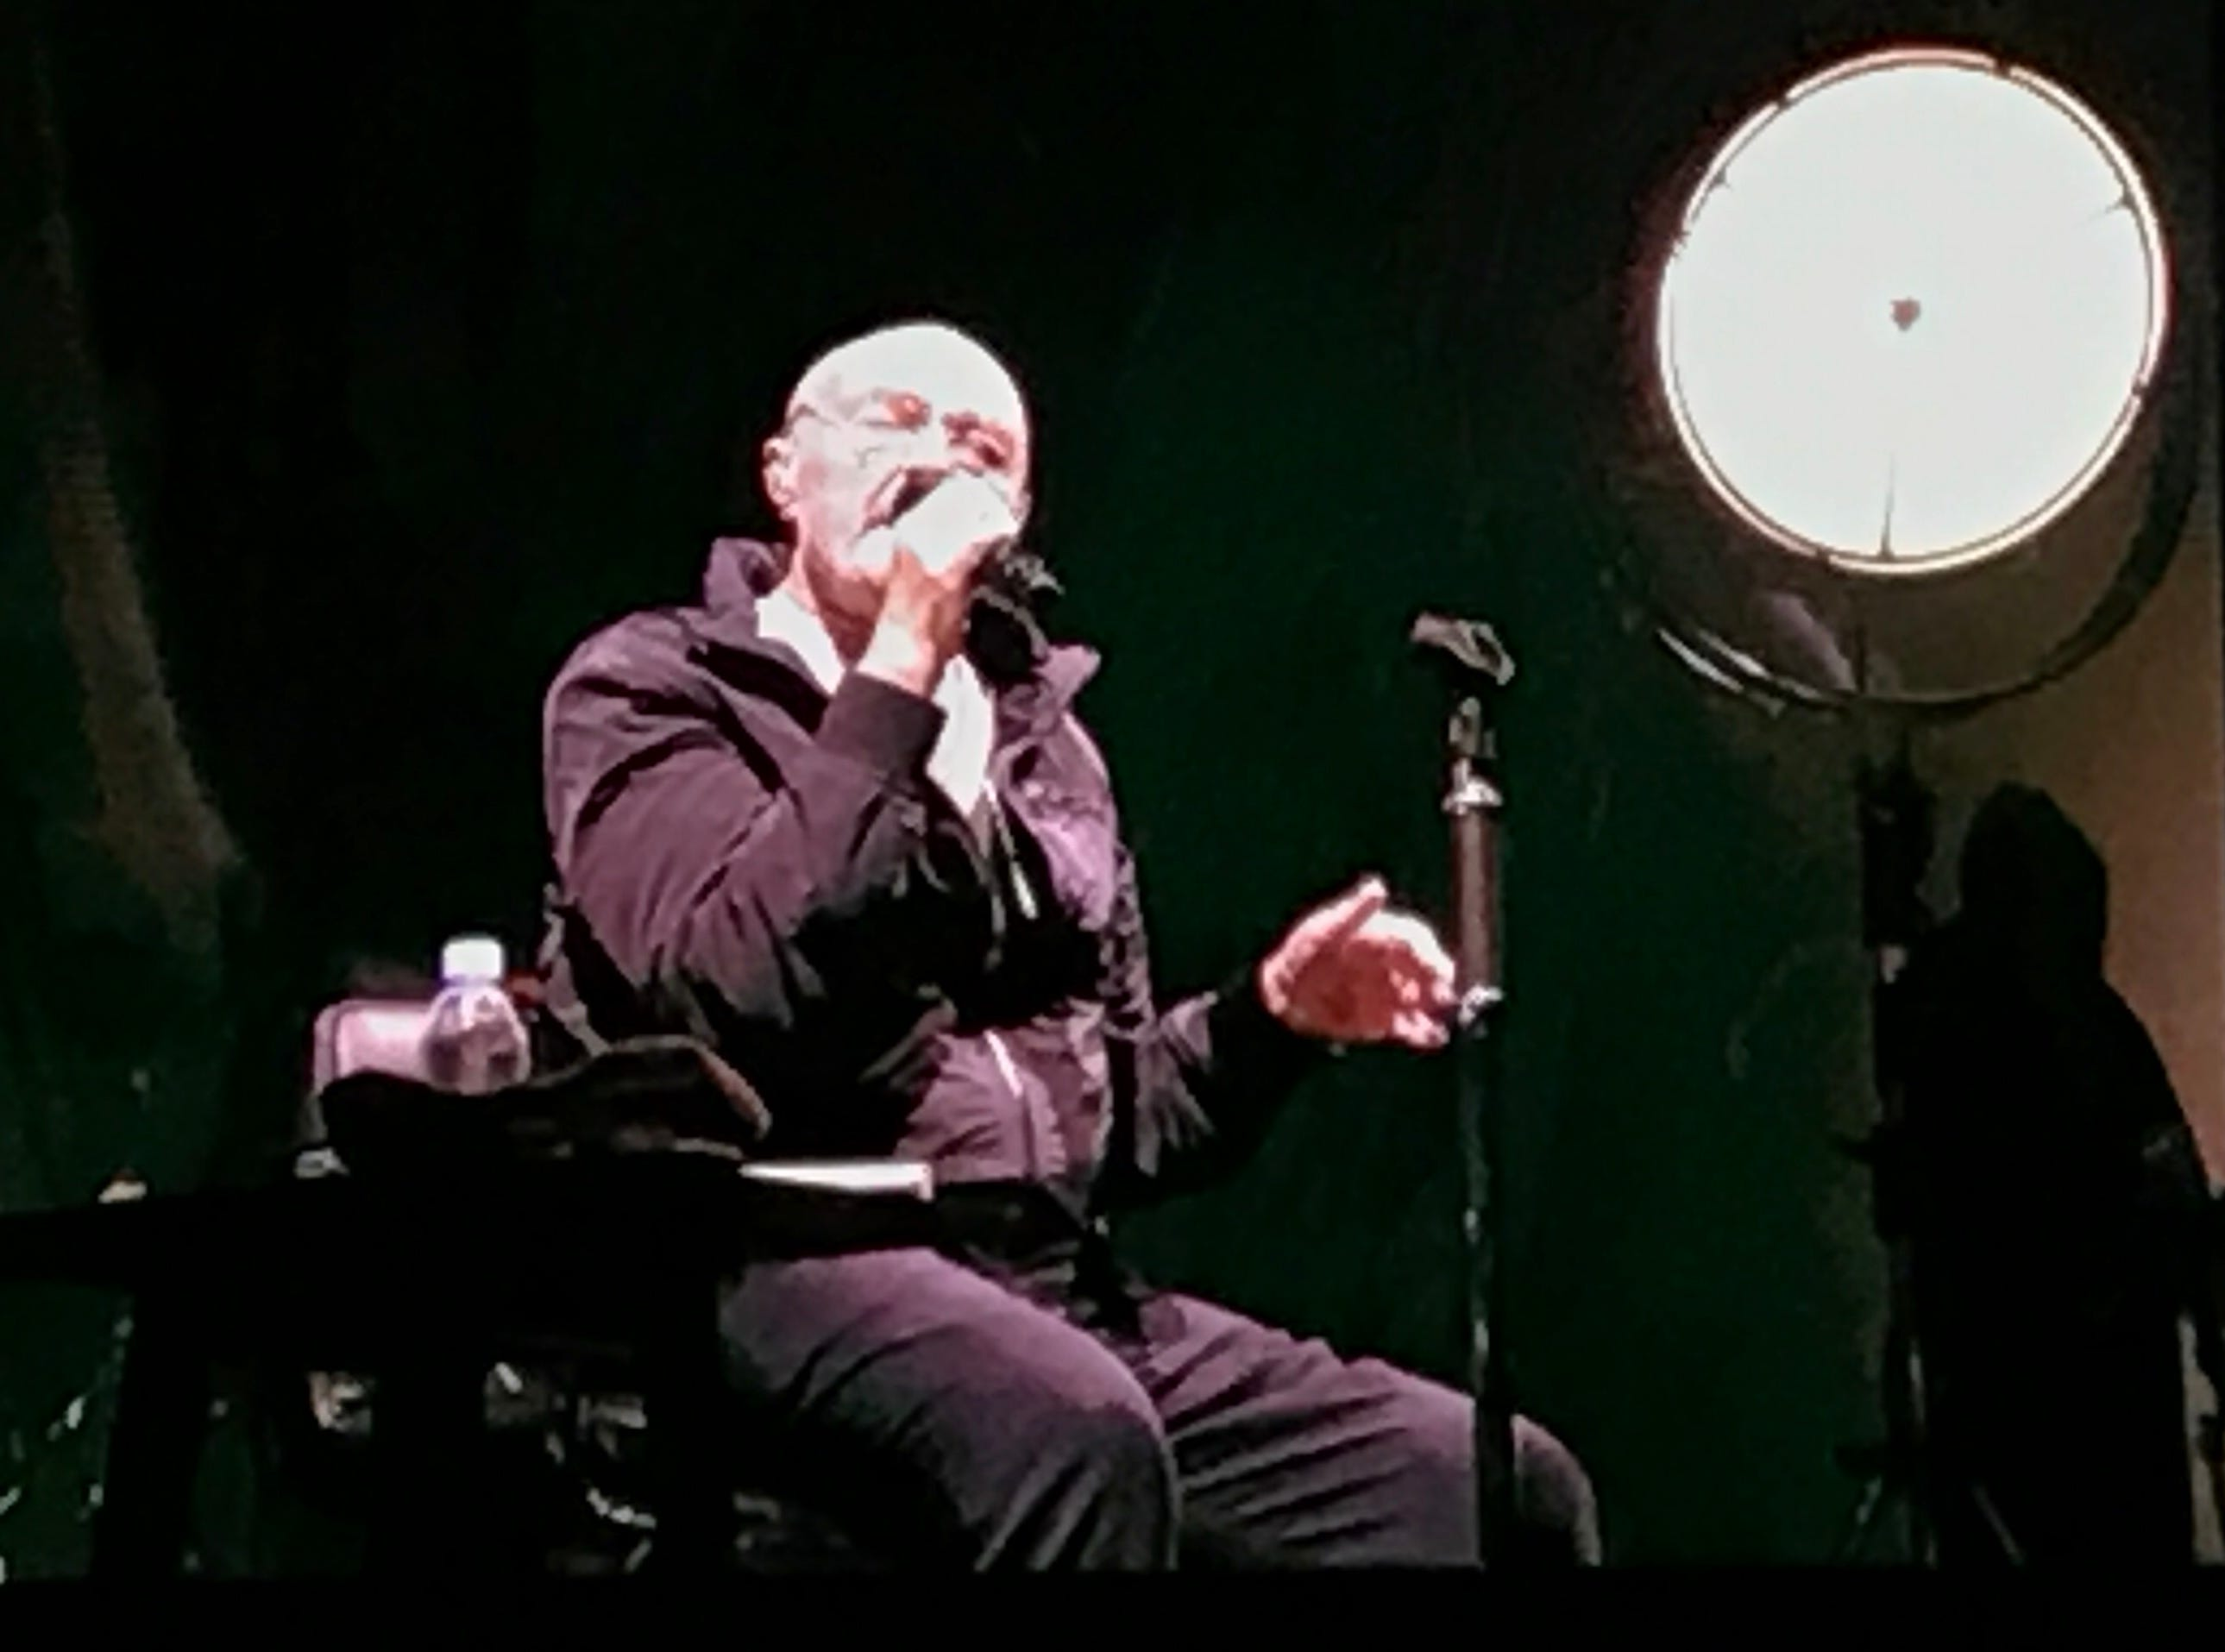 Phil Collins at the Wells Fargo Center in Philadelphia on Monday, Oct. 8